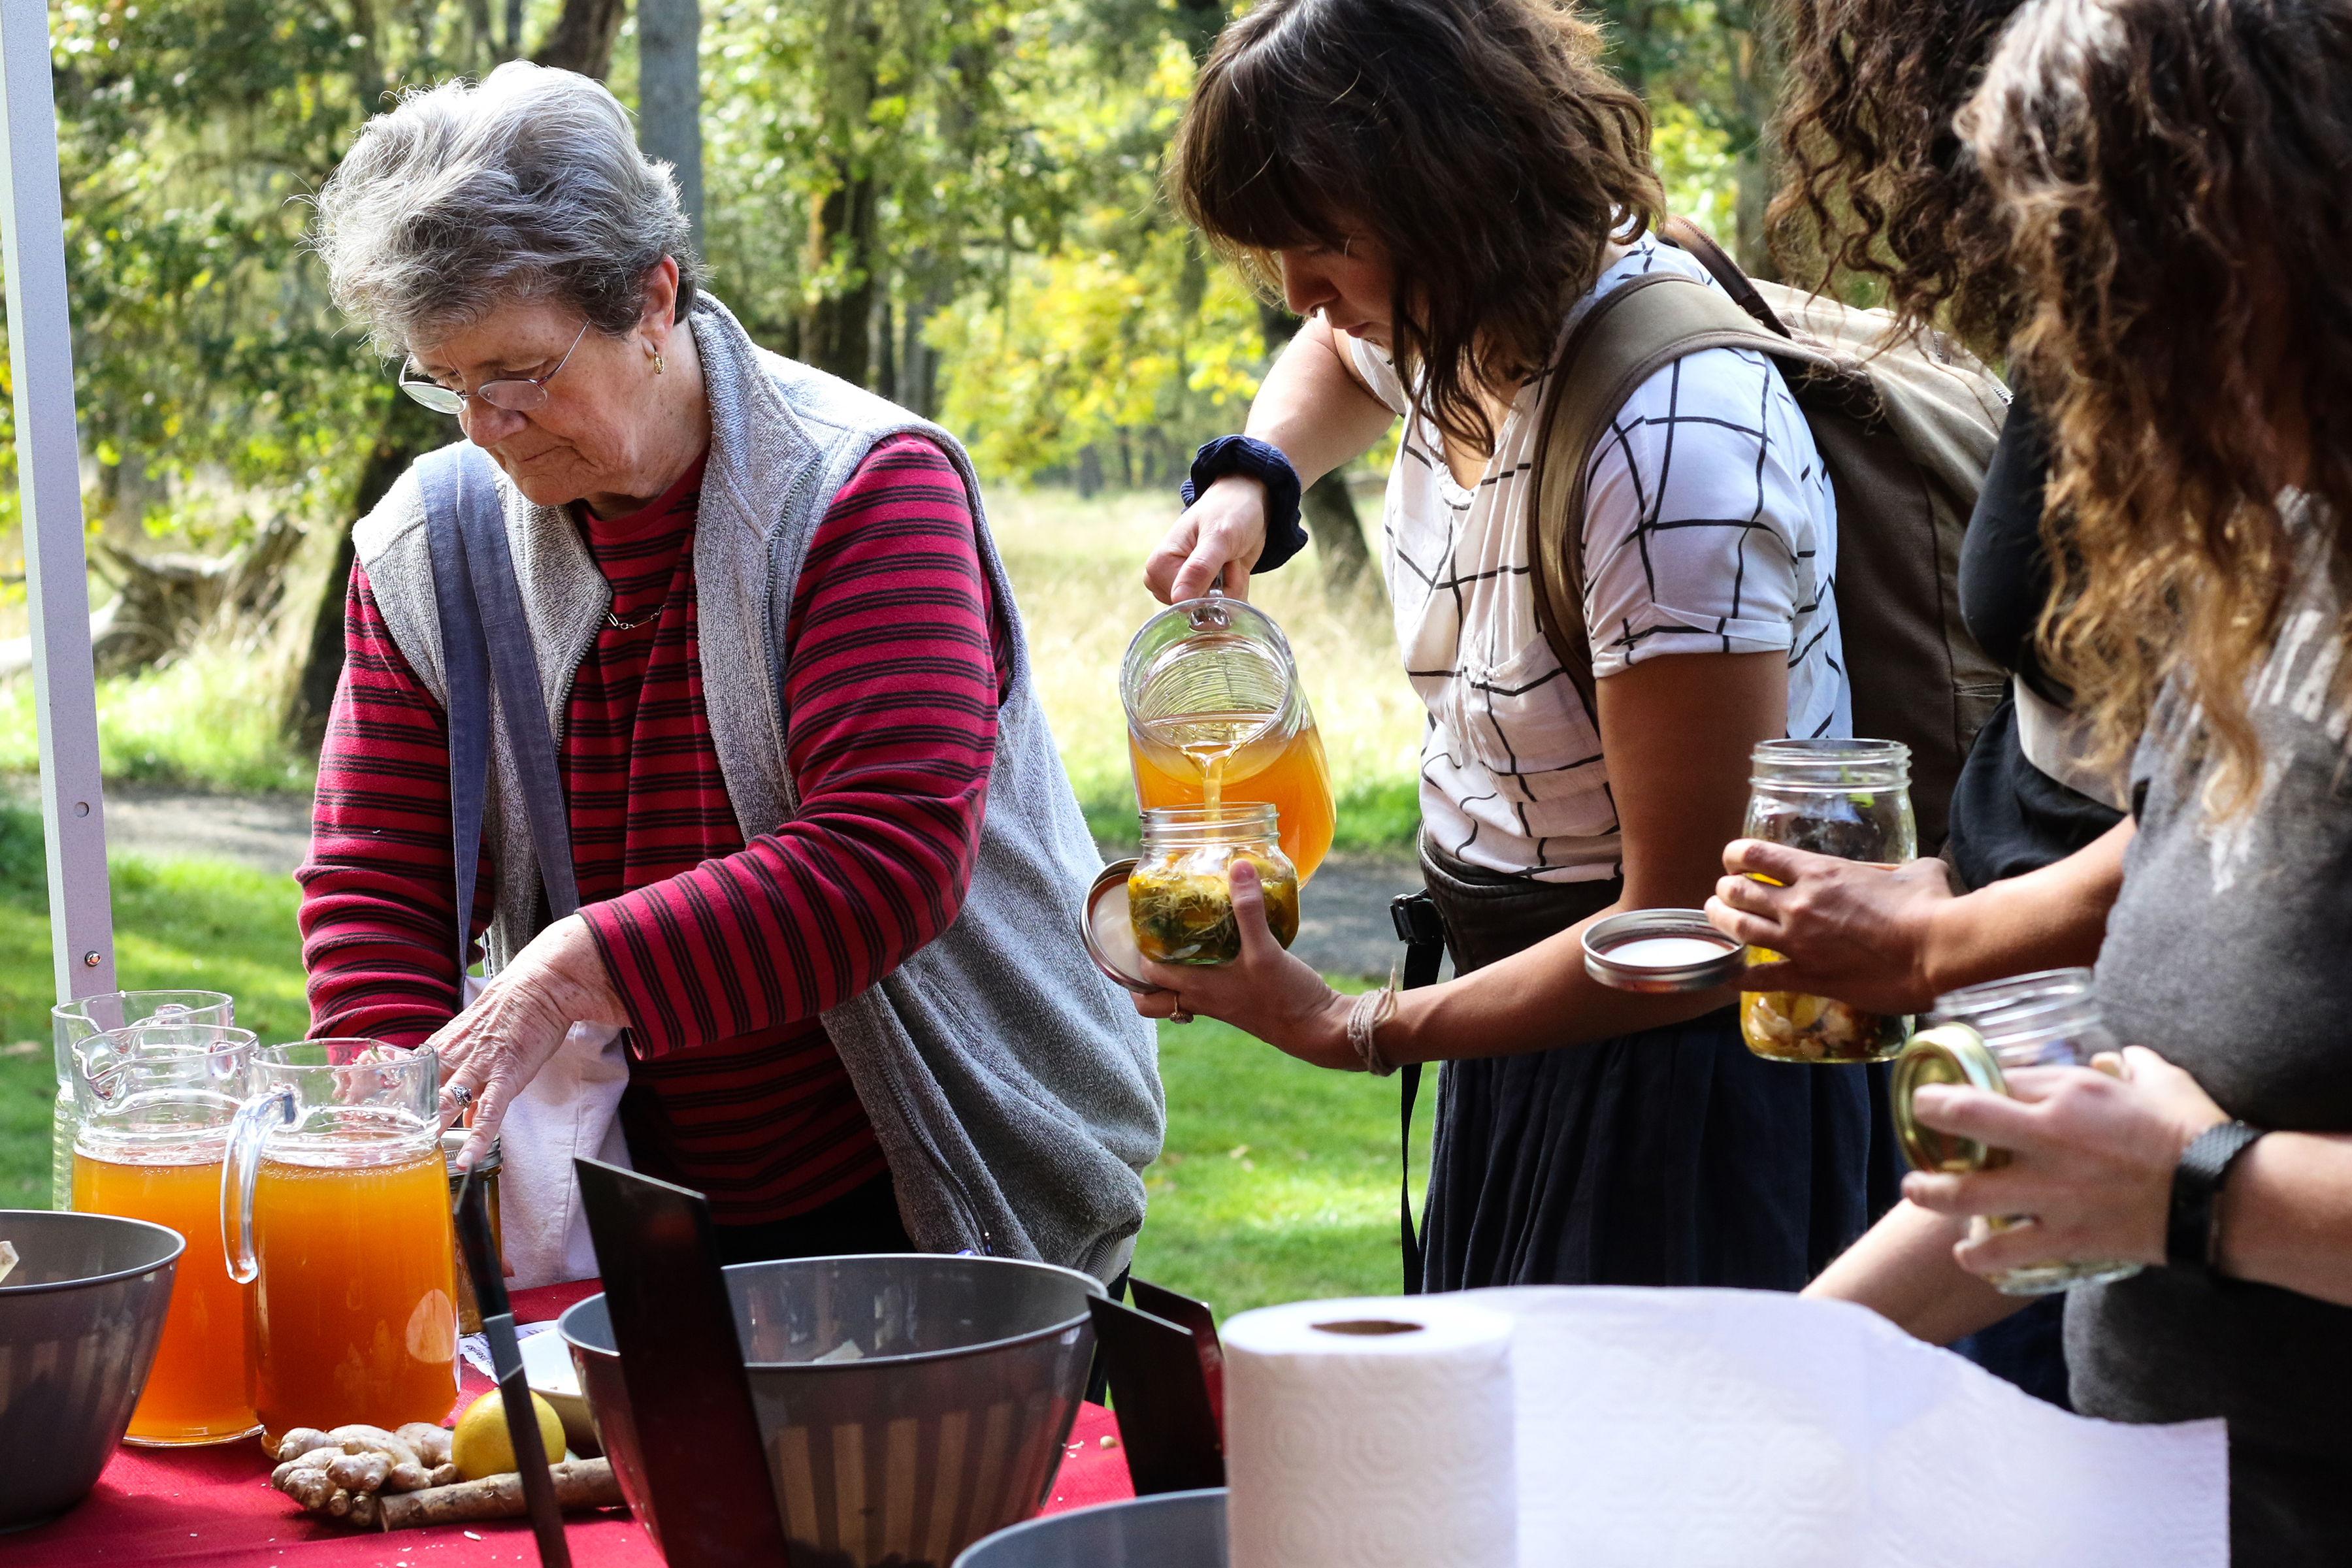 Participants create their own jars of fire cider, a natural tonic of apple cider vinegar and healthful herbs.